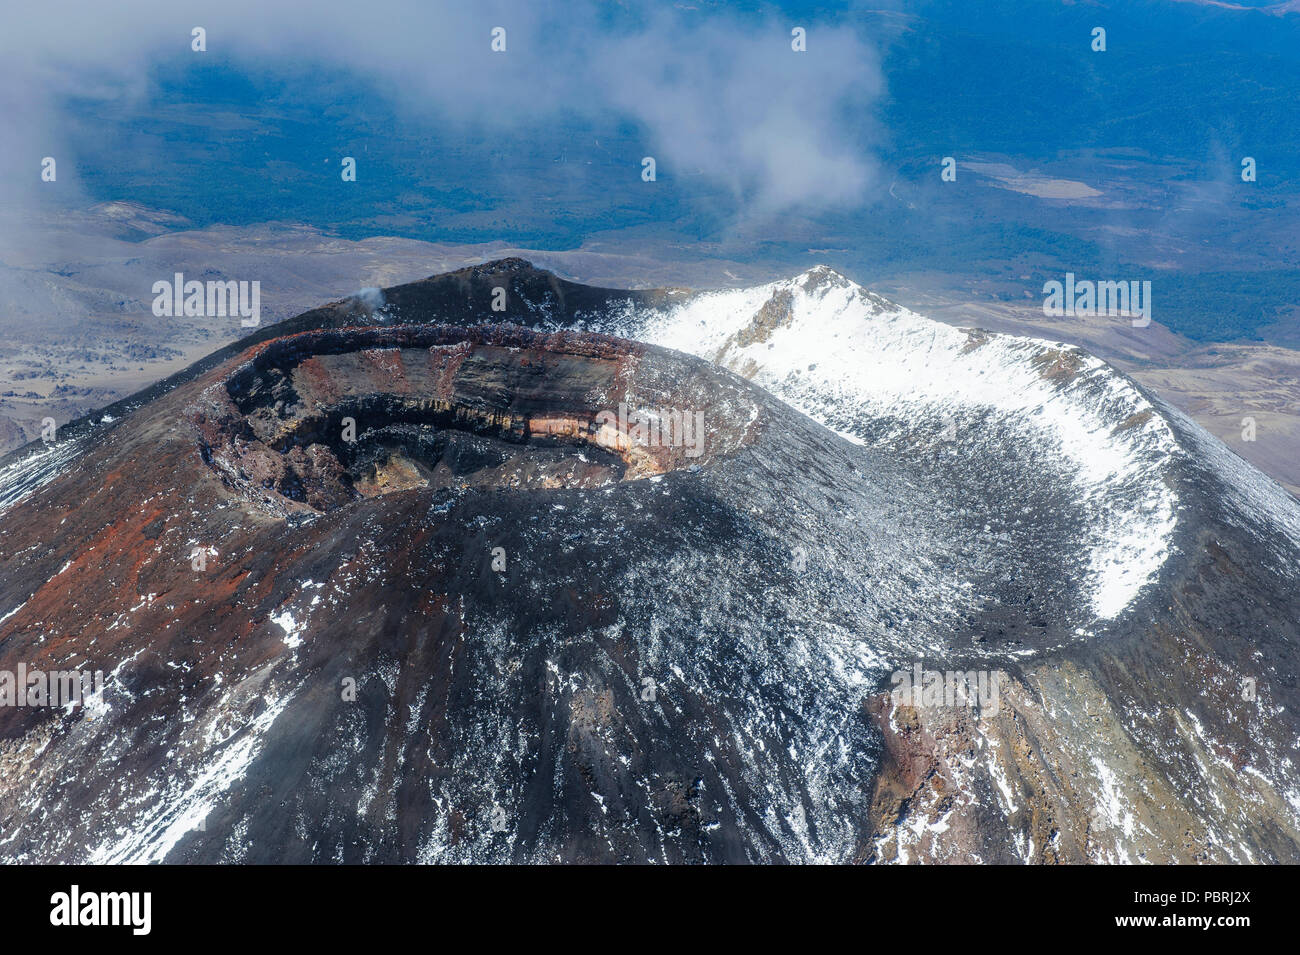 Aerial view of the crater of Mount Ngauruhoe, Tongariro National Park, North Island, New Zealand - Stock Image